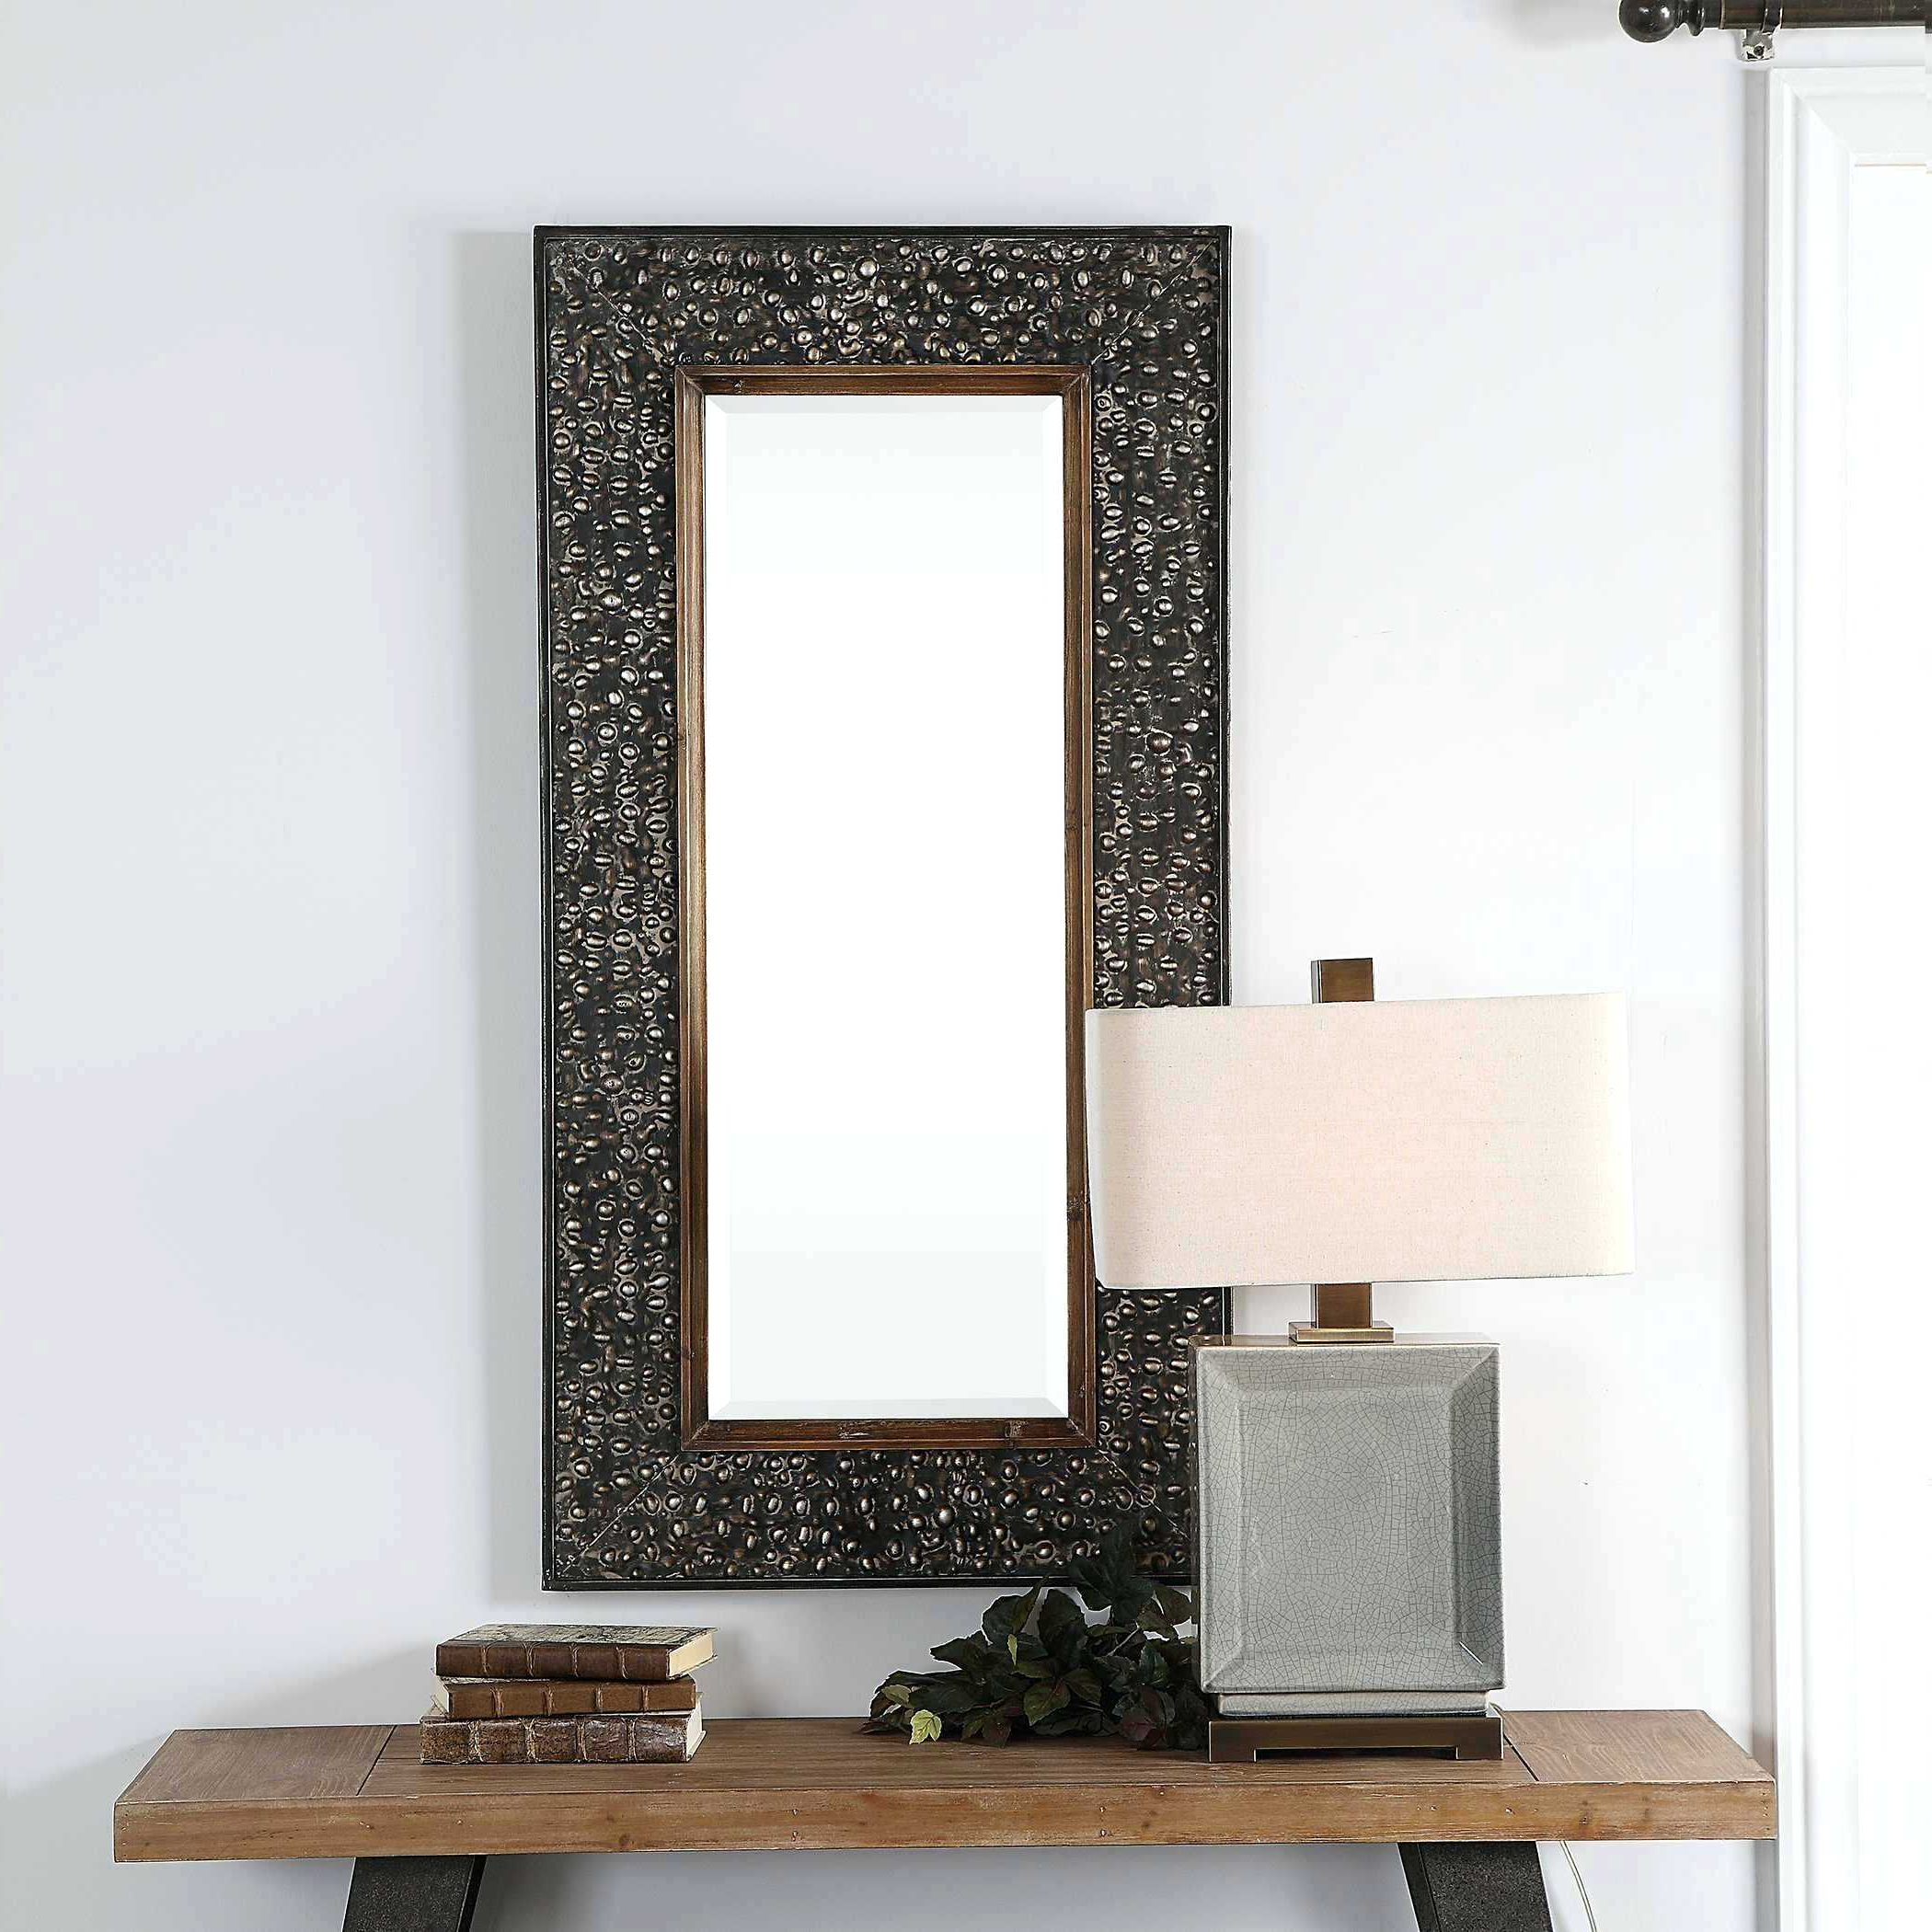 Three Hands Studded Wall Mirror Modern Mirrors – Jibudetese (View 18 of 20)